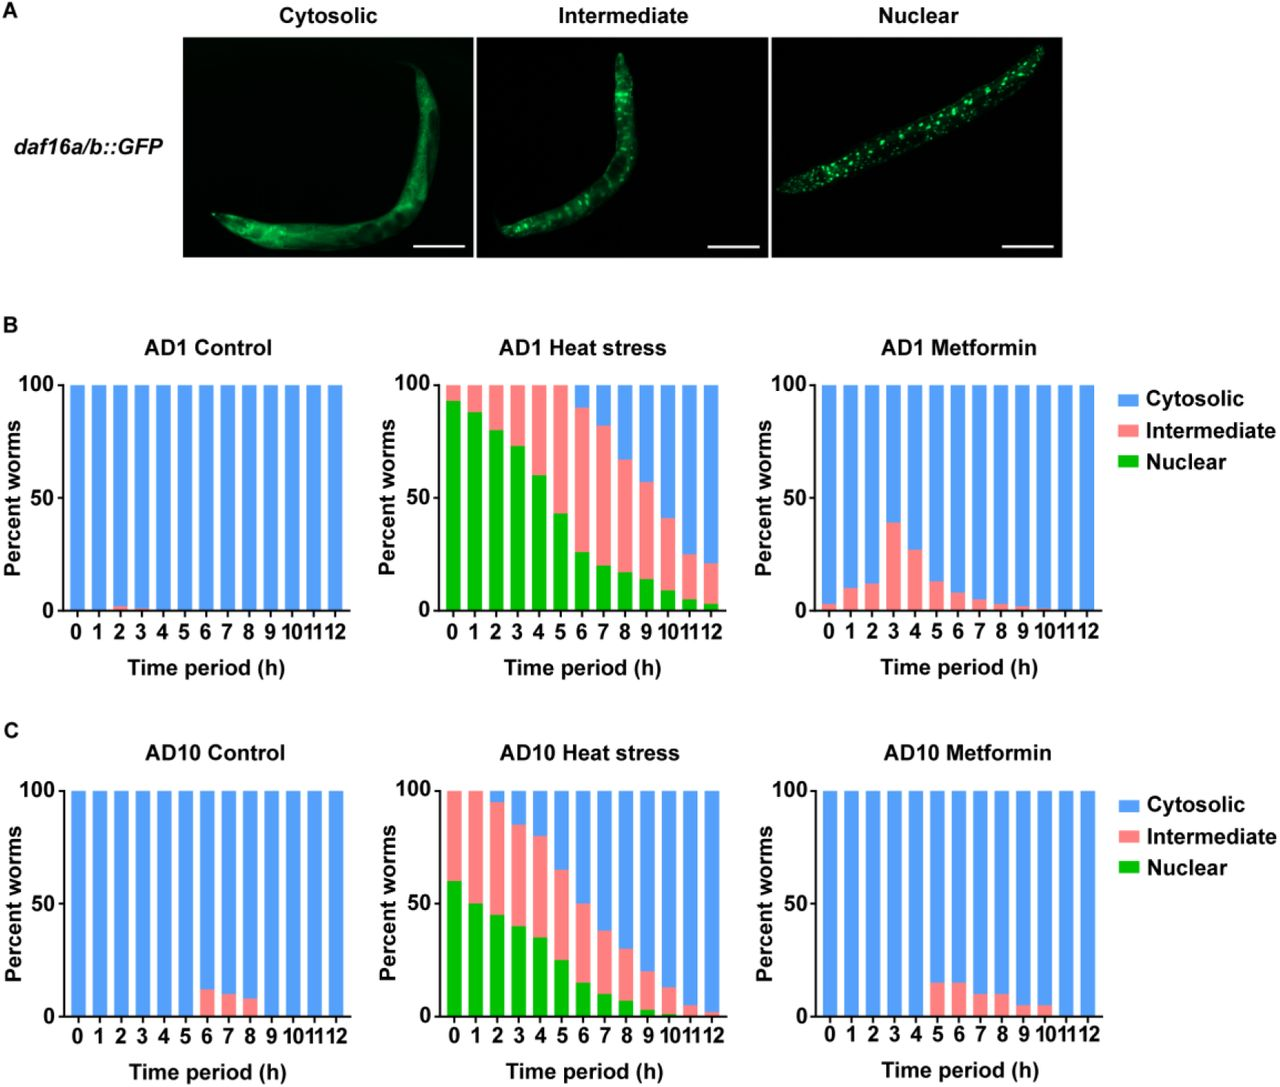 Rapamycin co-treatment alleviates metformin toxicity in human primary cells. Pre-senescent (PD44) primary human skin fibroblasts were treated with indicated doses of metformin in presence or absence of indicated concentrations of rapamycin (Rap) for 24 ( A, B ) and 20 ( C, D ) hours. Cell death ( A , LDH assay), cell survival ( B , MTT assay), ATP content ( C ) and mitochondrial membrane potential ( D , JC-1 staining) were measured; the data are complementary to Fig. 7A-C ; values are relative to the respective untreated control (no rapamycin, no metformin) for each assay. n=3, mean and SEM are presented, two-tailed unpaired t-test was used for the statistical analysis, statistical values are shown in Table S2 ; * p